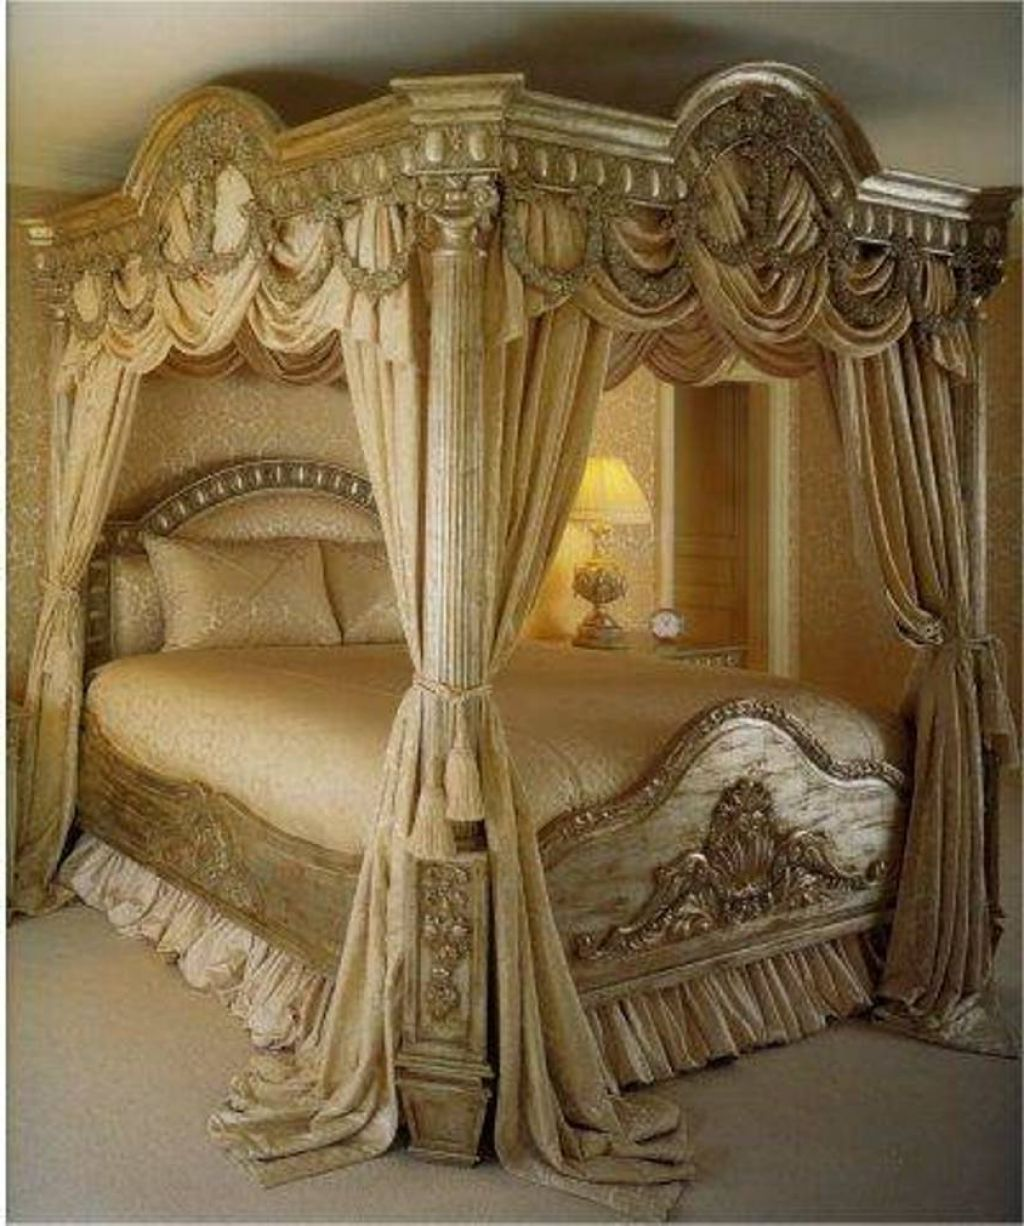 victorian style bedroom furniture. Fabulous Gold Colored Victorian Style Canopy Bed With Curtain  Create an Enjoyable and Splendid FurnitureVictorian Bedroom